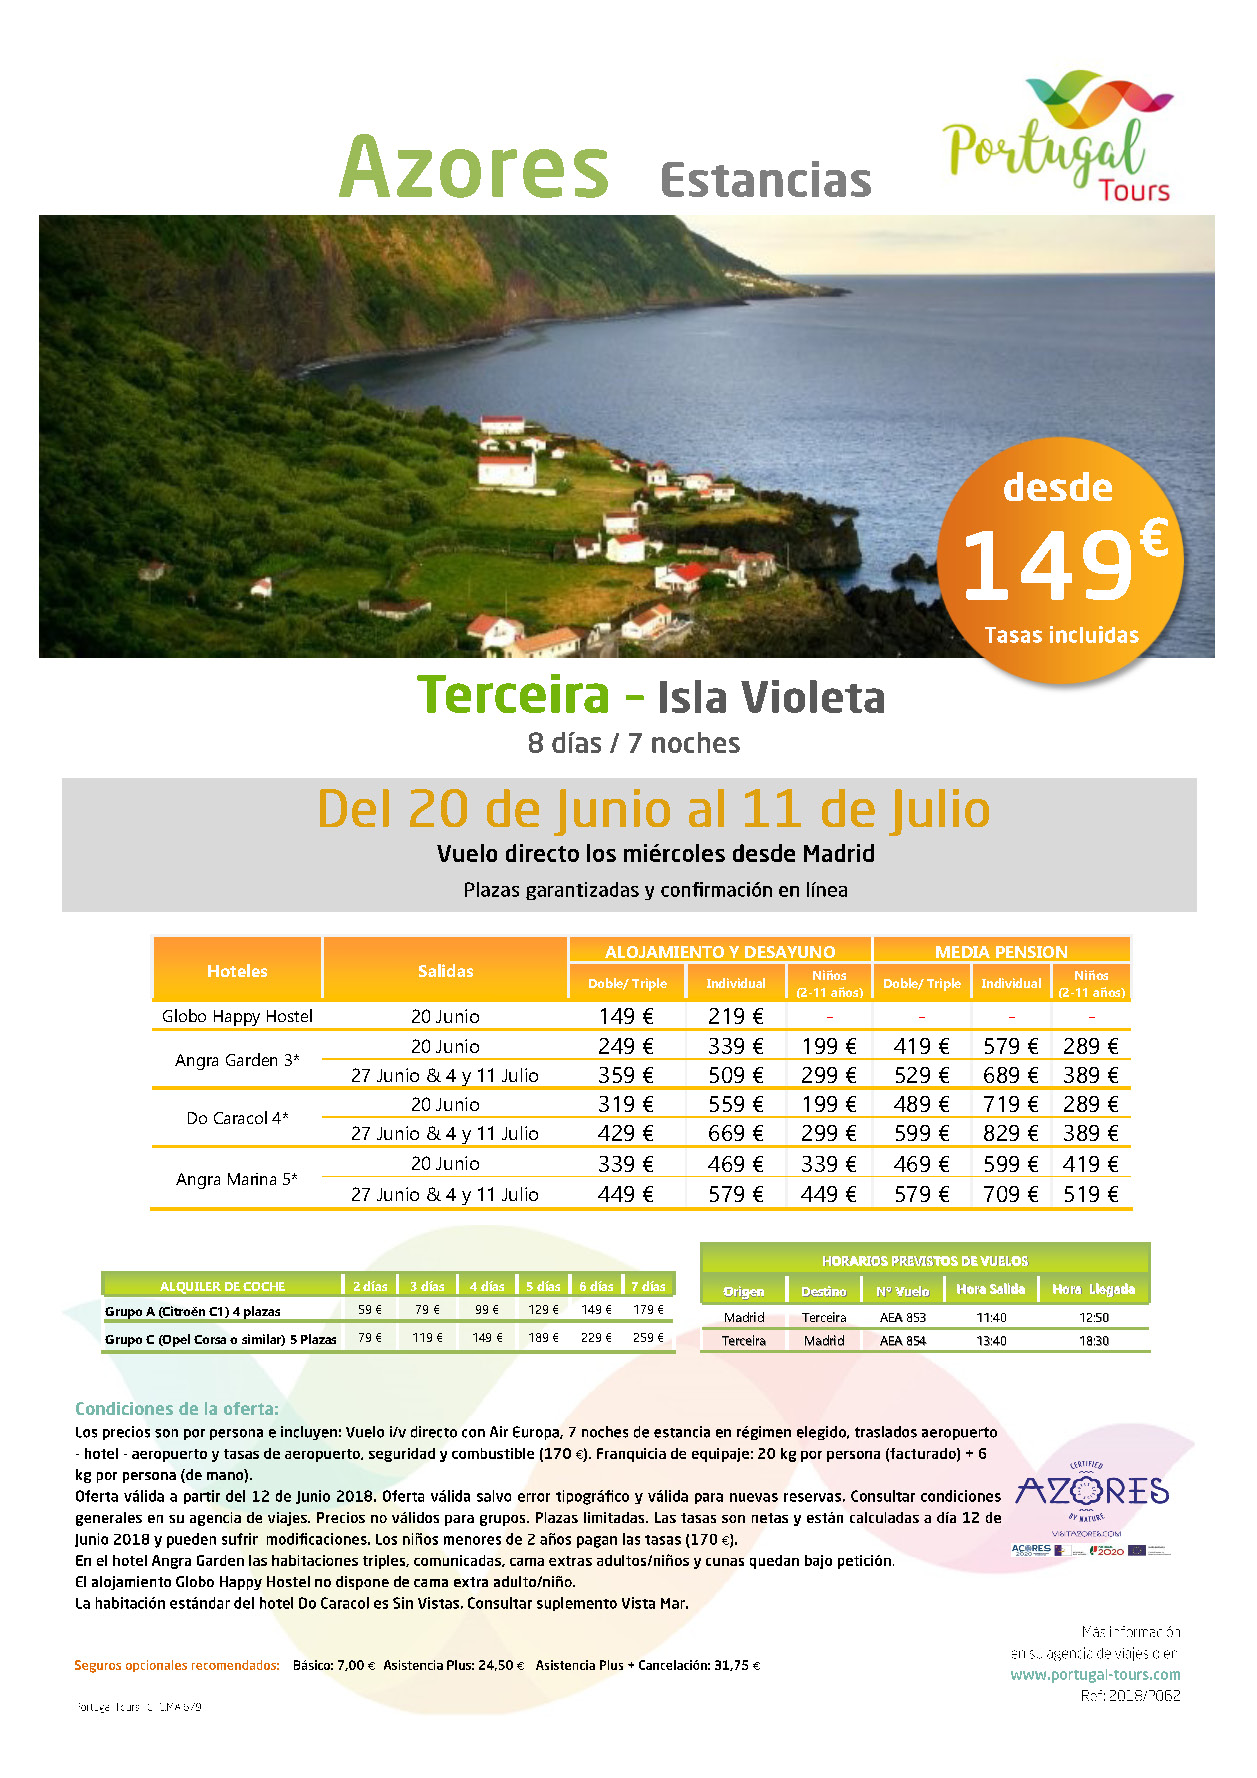 Oferta Portugal Tours Azores junio-julio 2018